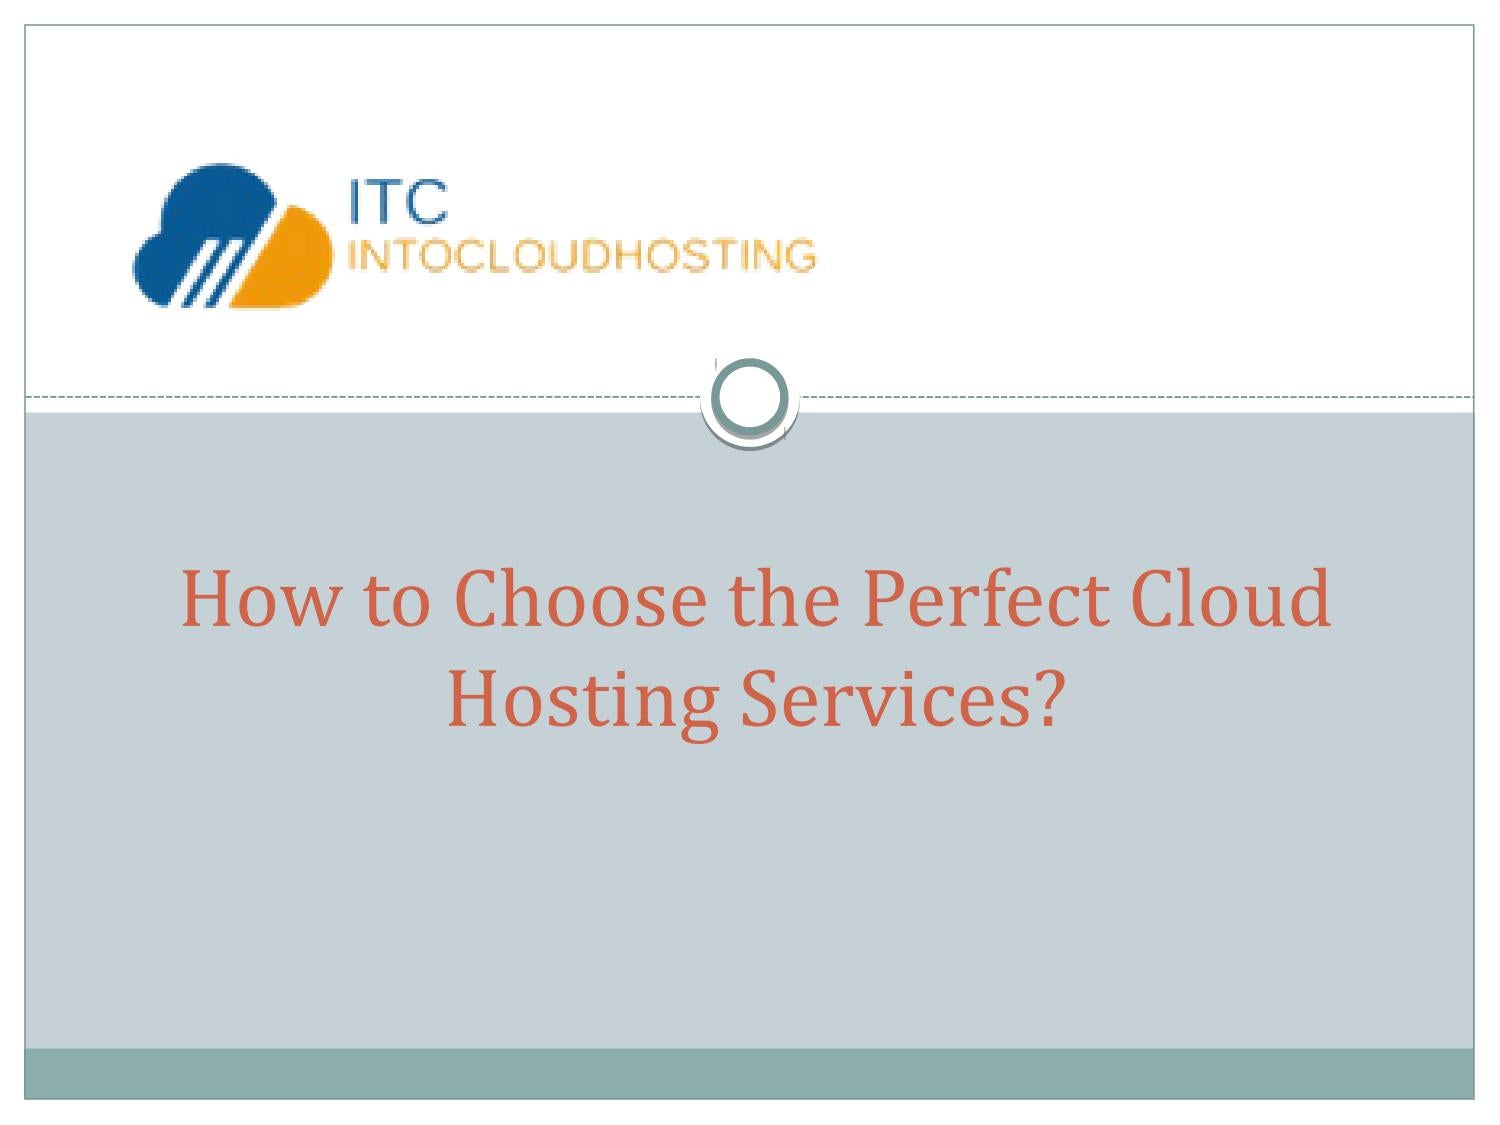 How to Choose the Perfect Cloud Hosting Services?